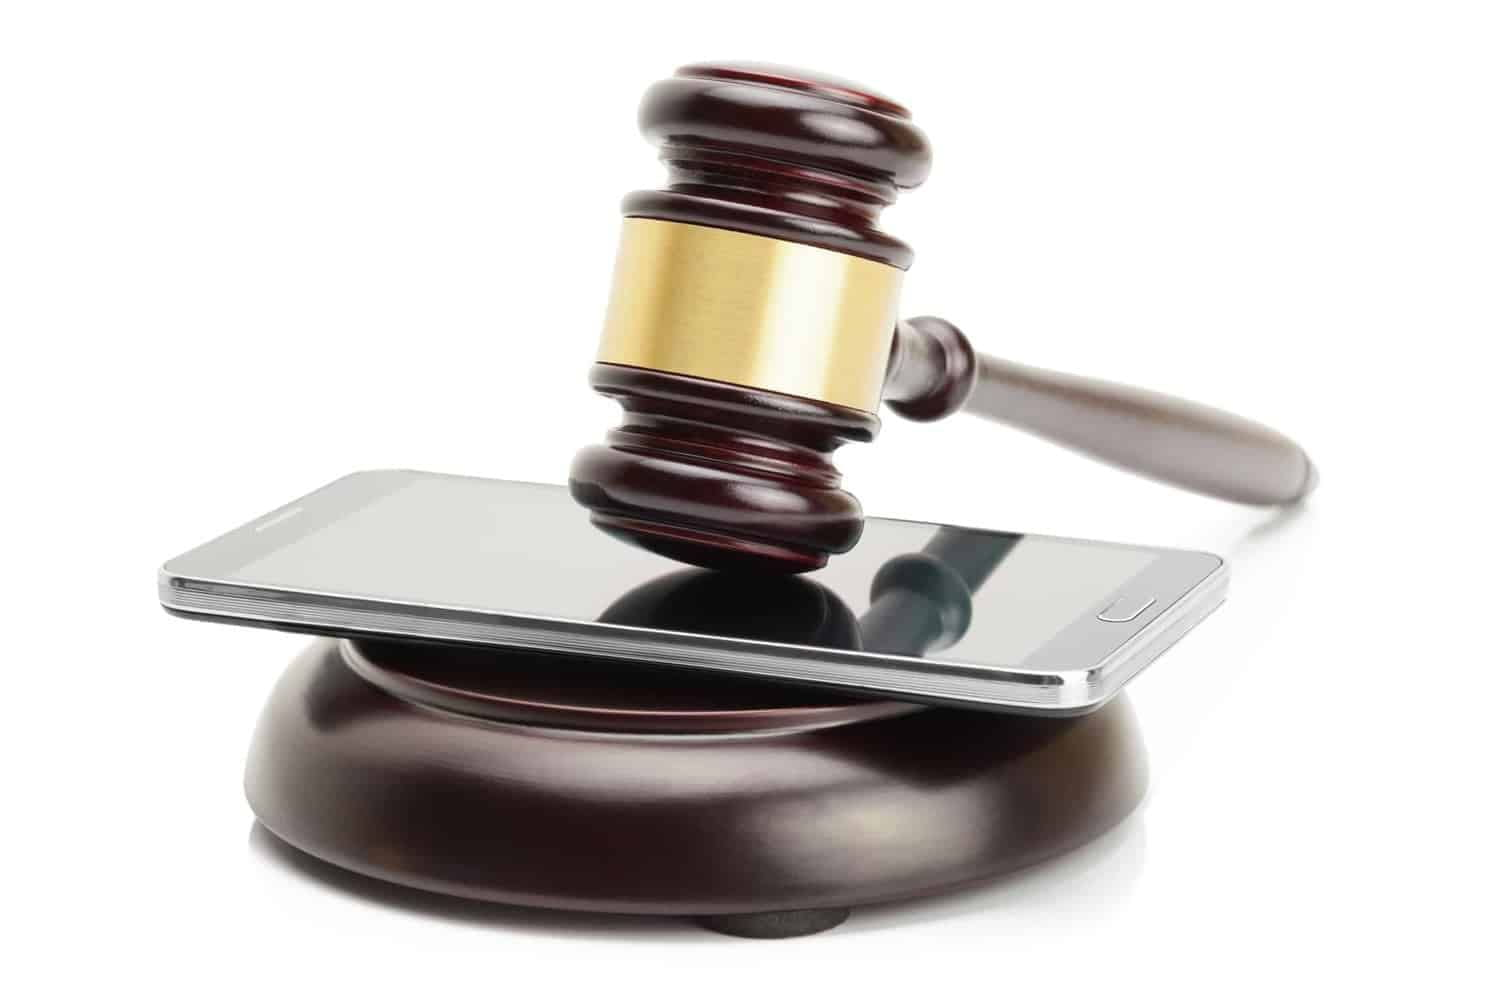 Gavel on top of mobile phone